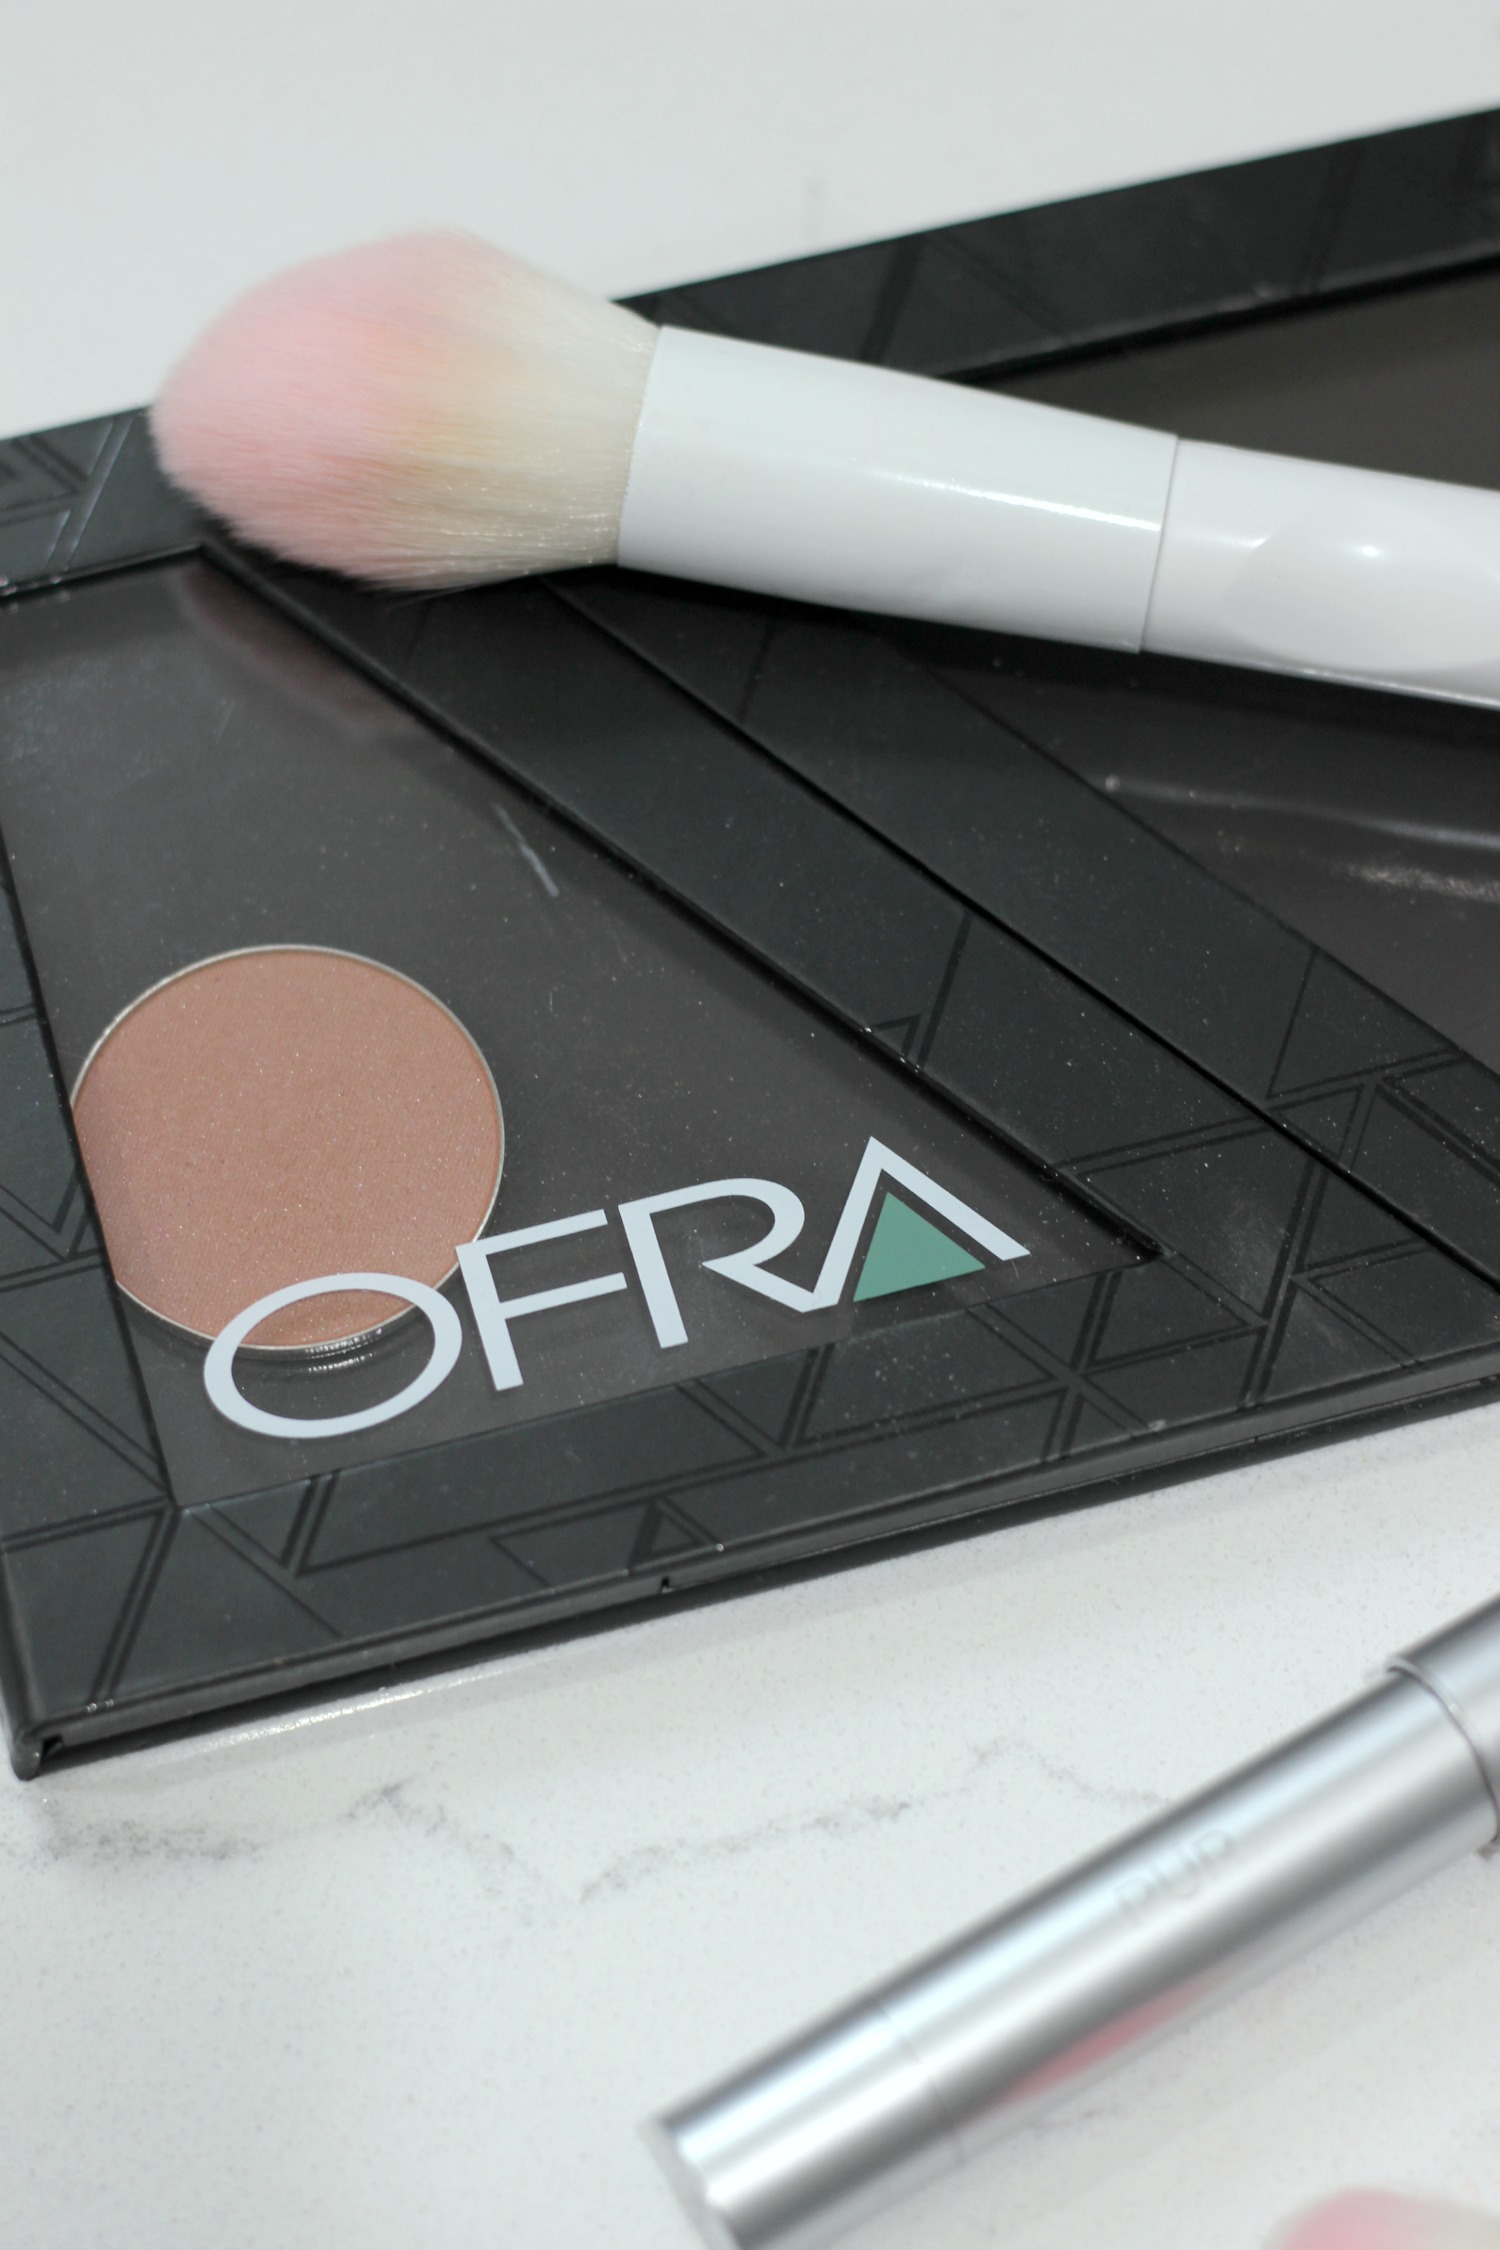 Boxycharm February 2018 Ofra Blush Review